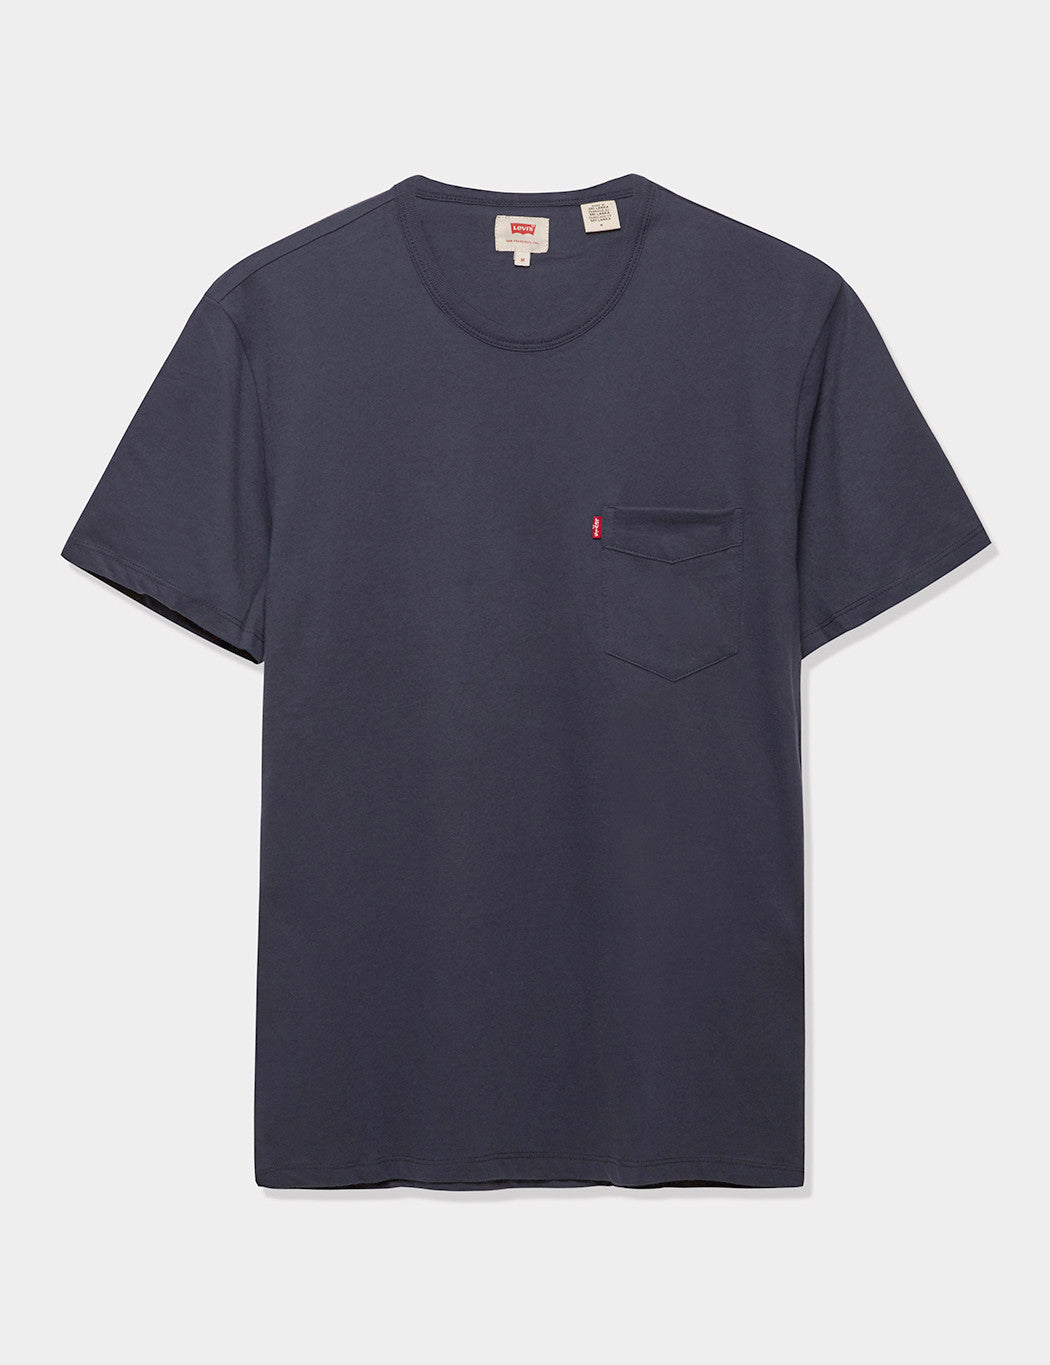 Levis Sunset Pocket T-Shirt - Dark Navy